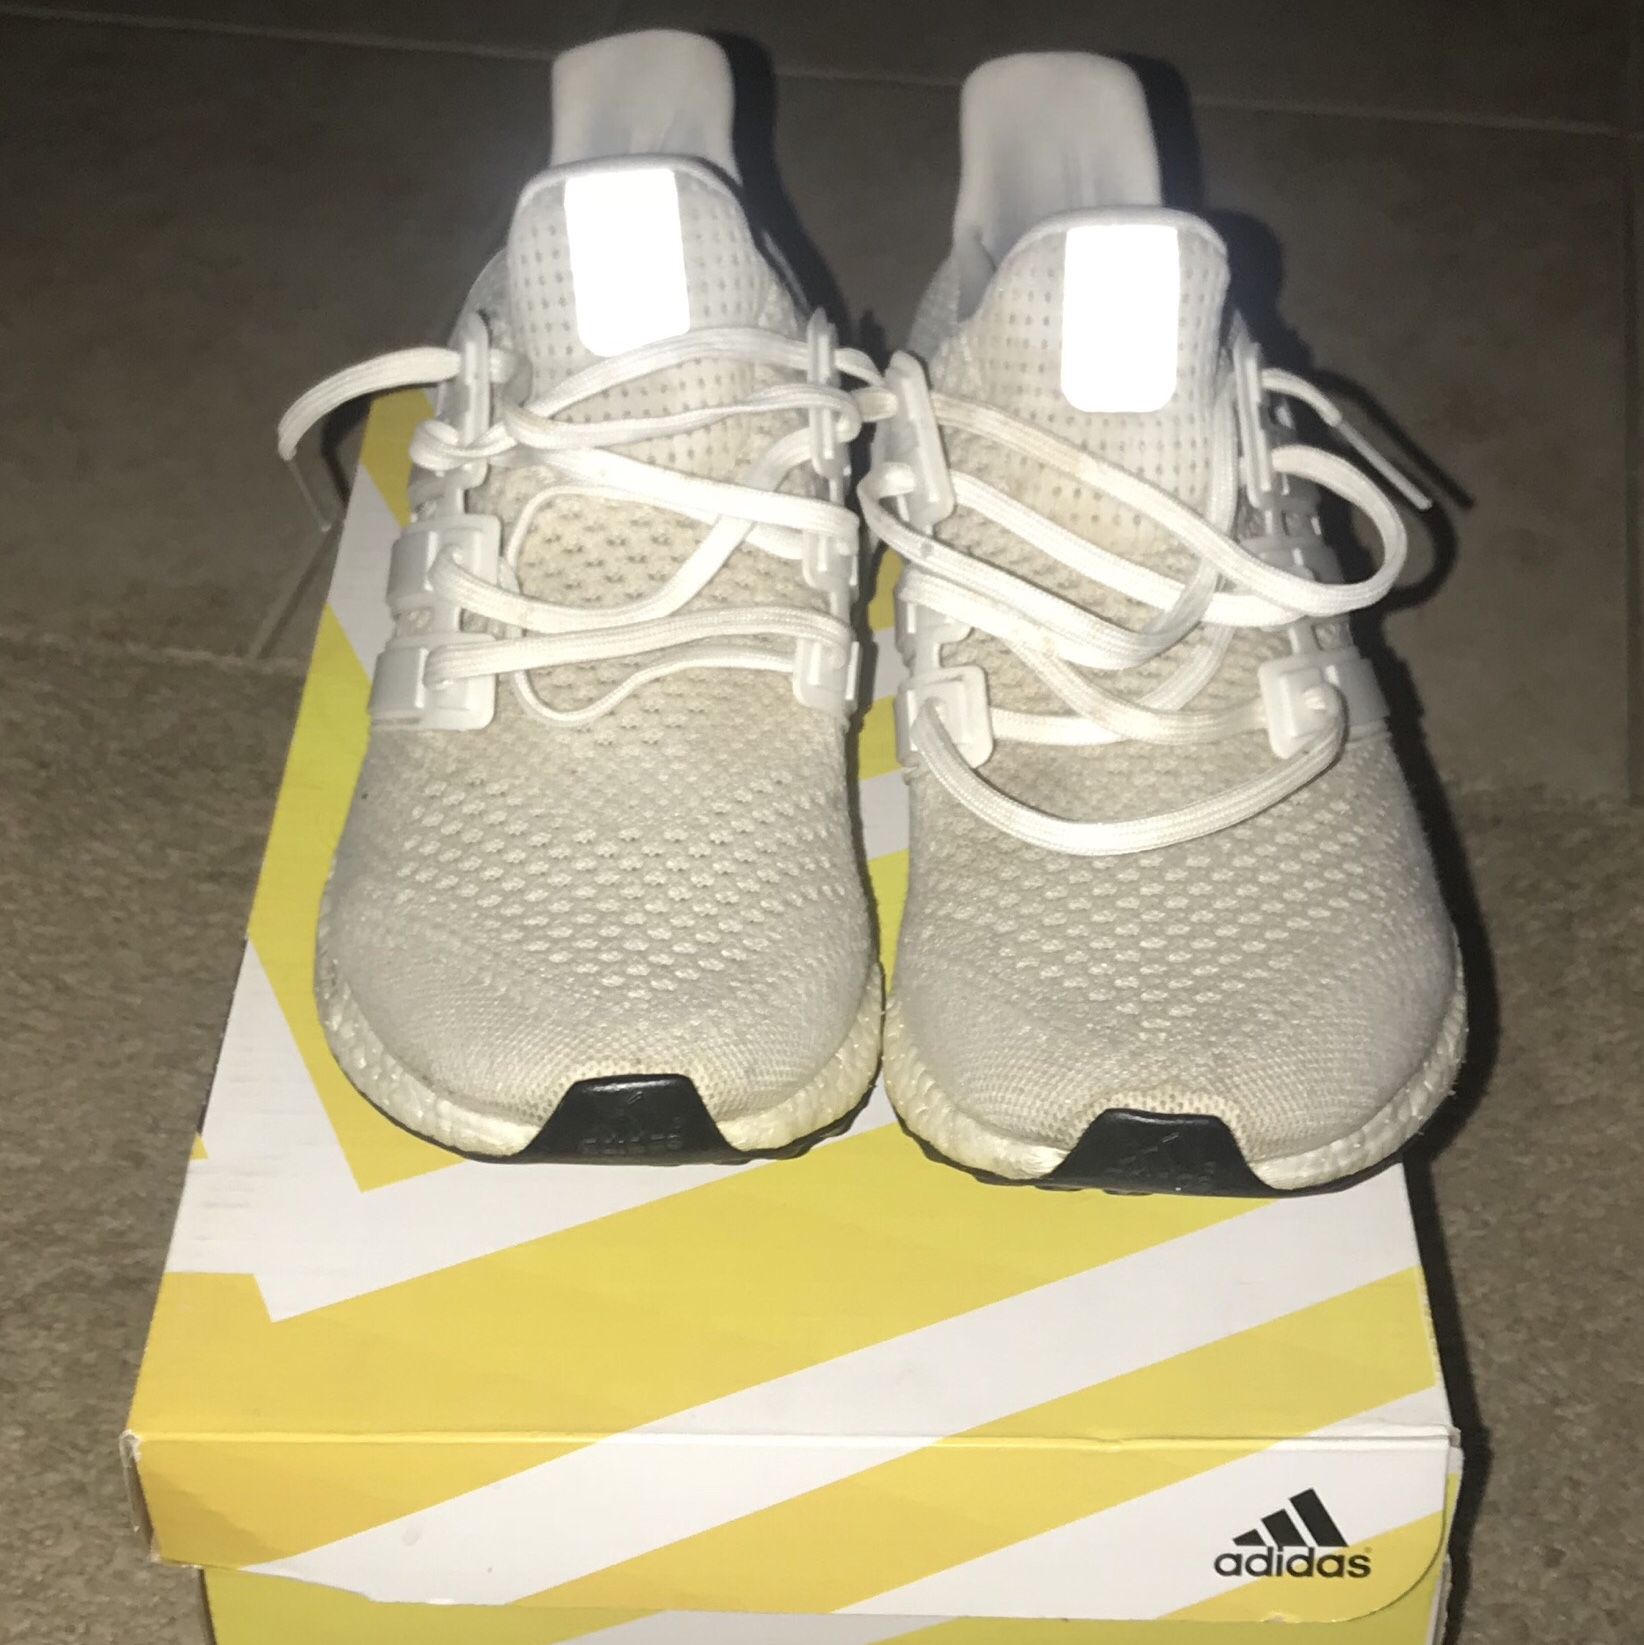 new style 7a4c5 058f3 Adidas UB 1.0 Triple whites. Size 10 in decent worn... - Depop